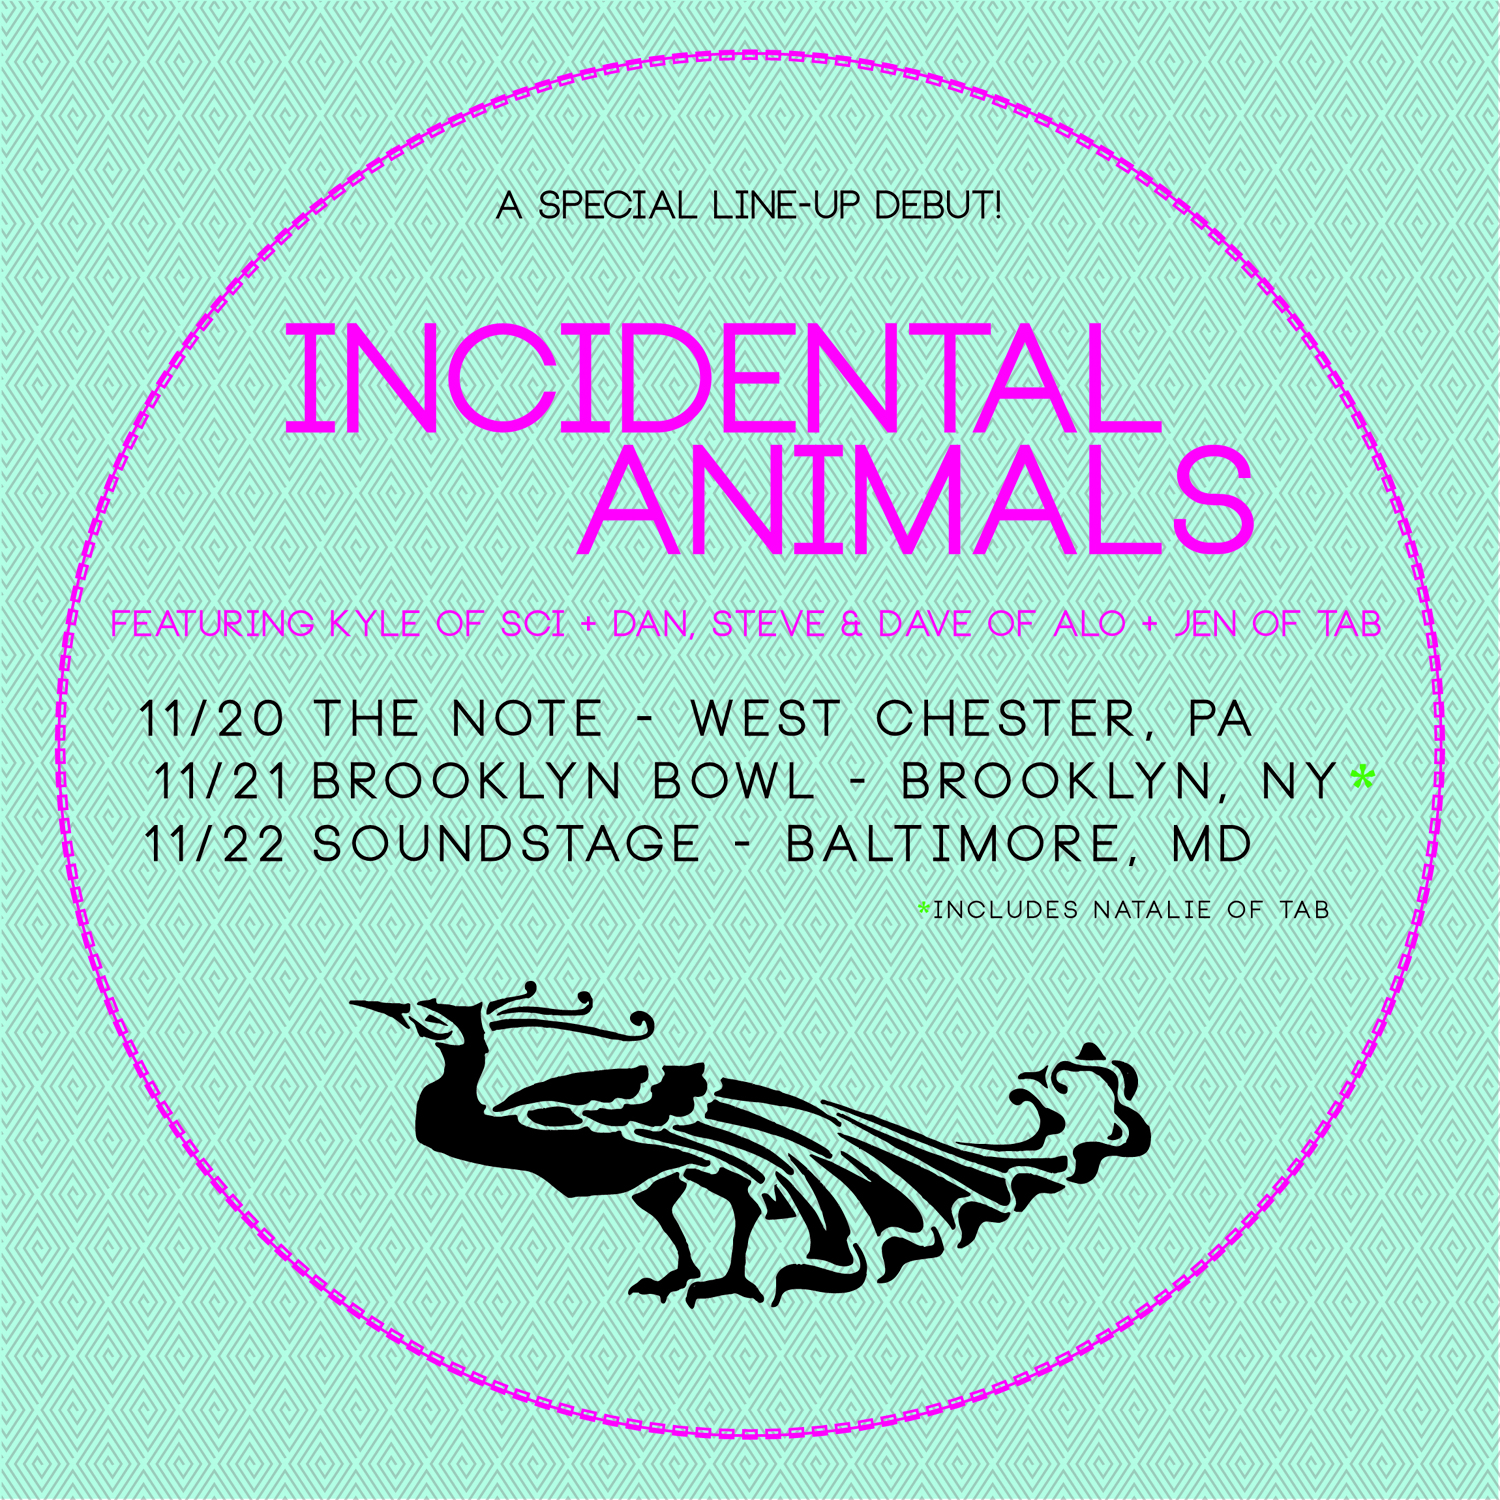 Incidental Animals Review 11/22 at Baltimore Soundstage